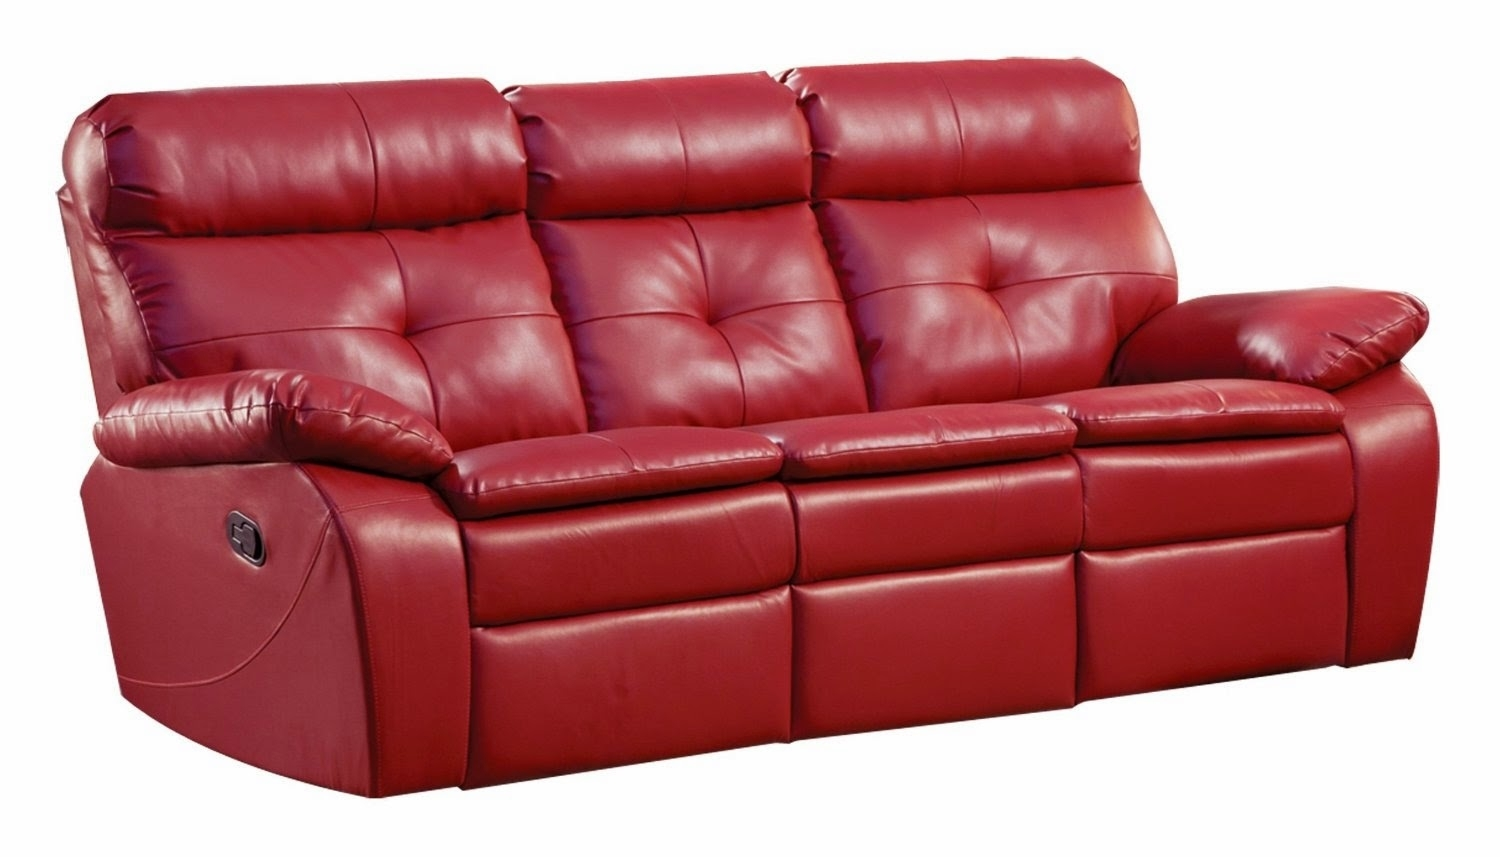 The Best Reclining Sofa Reviews: Red Leather Reclining Sofa And Loveseat Within Red Leather Reclining Sofas And Loveseats (Image 10 of 10)